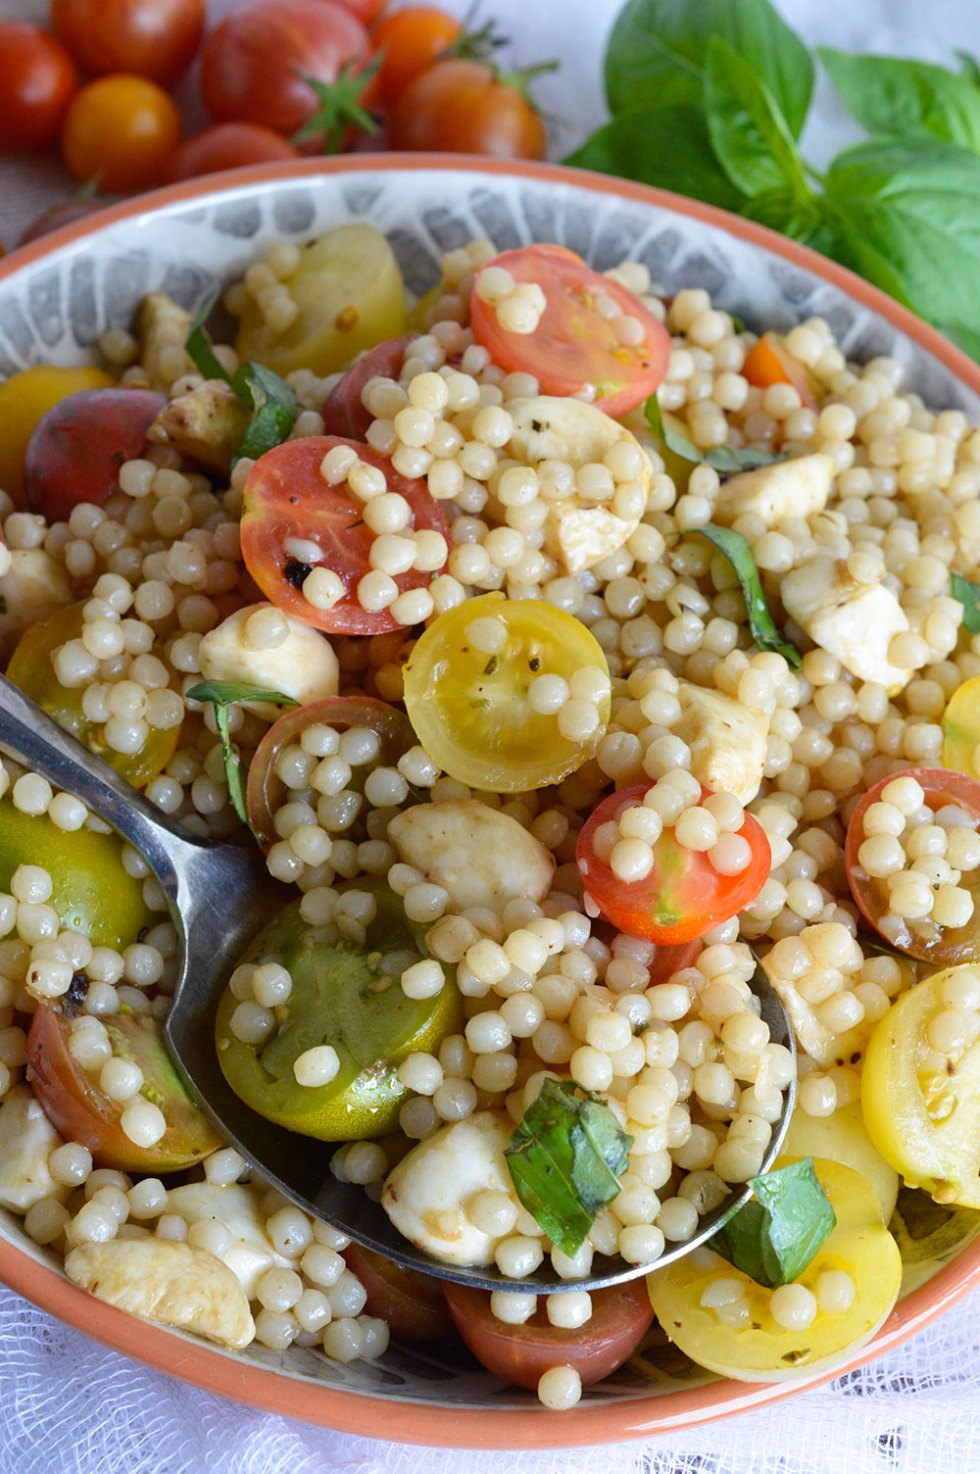 Caprese Couscous Salad Recipe - This fresh and easy side dish is full of flavor! Fresh tomato, mozzarella and basil with couscous and balsamic dressing. #epicurious #outofthekitchen